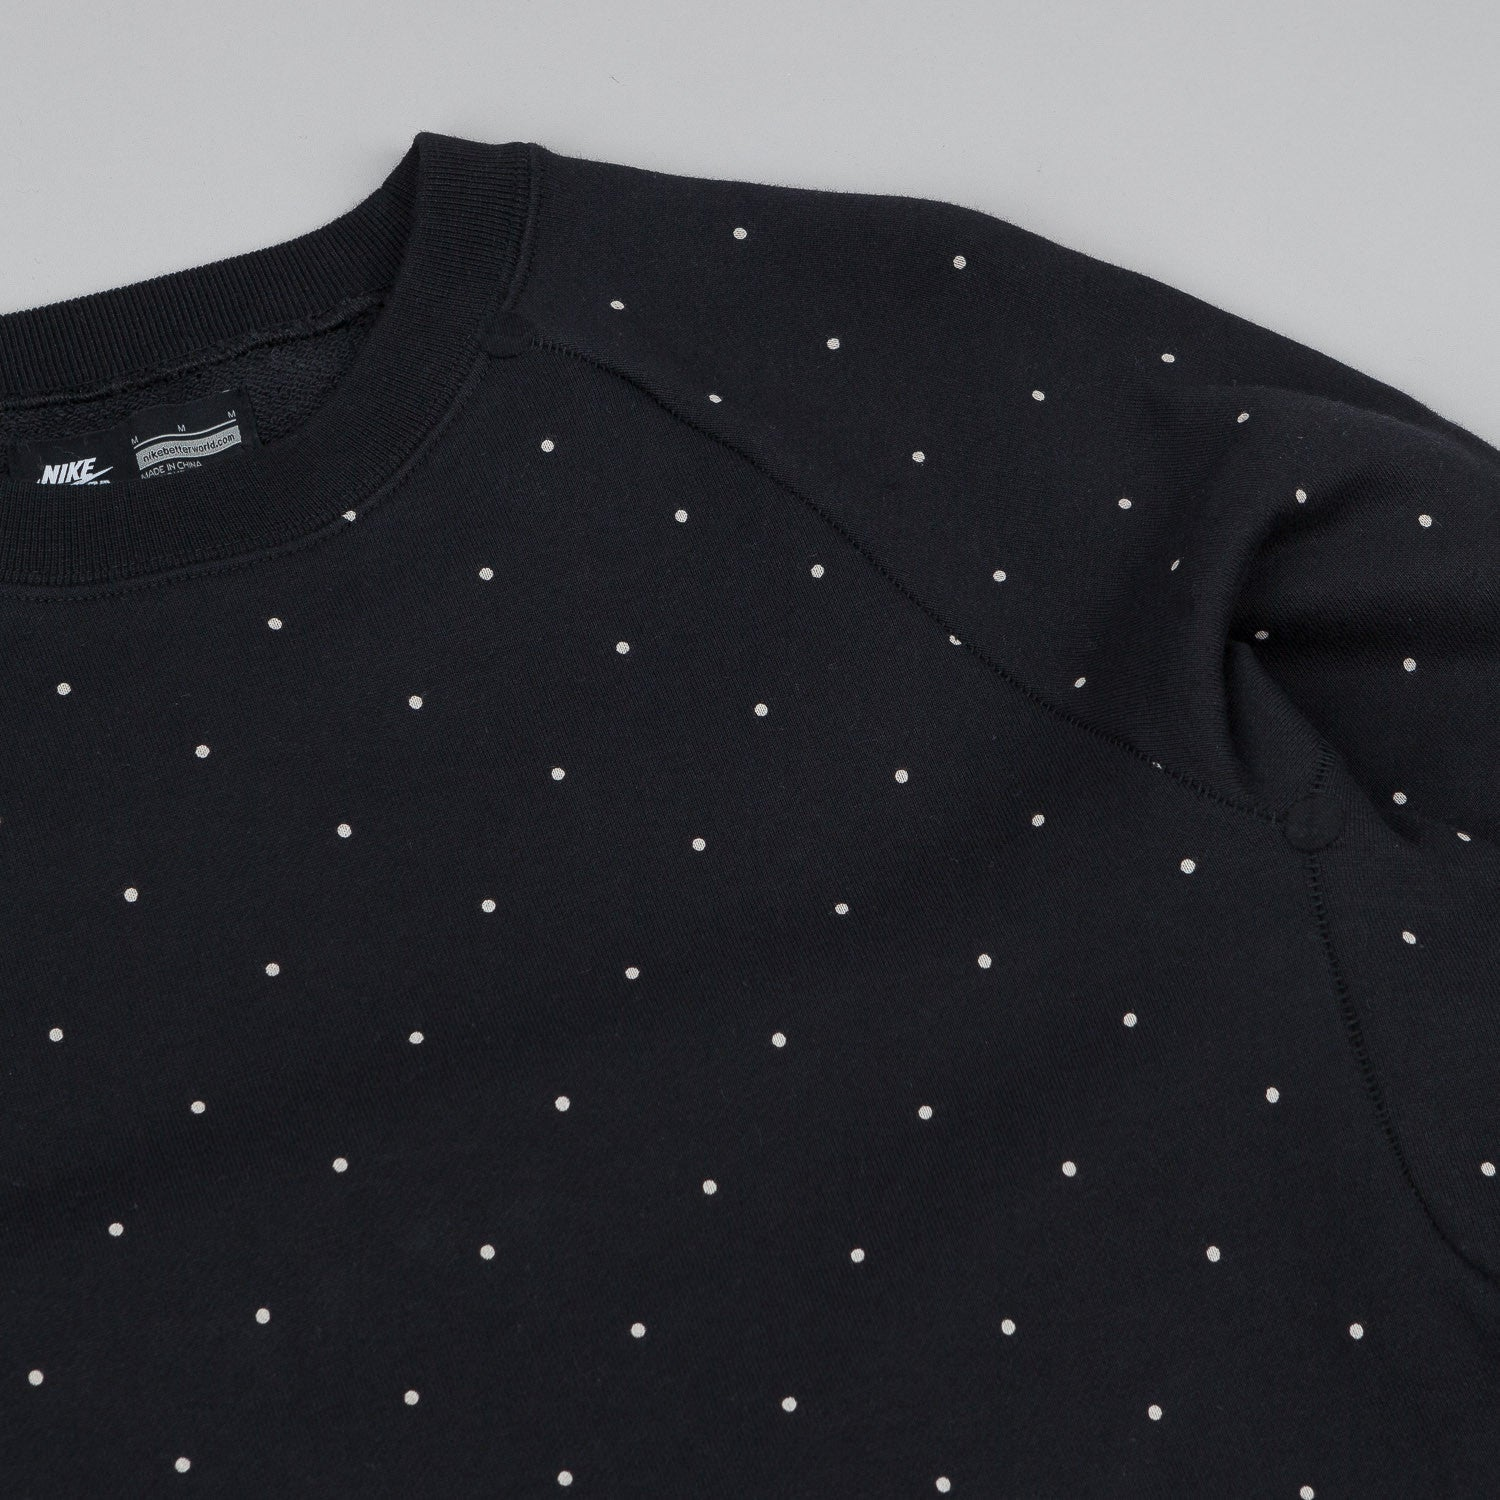 Nike SB Everett Polka Dot Crew Neck Sweatshirt - Black / White